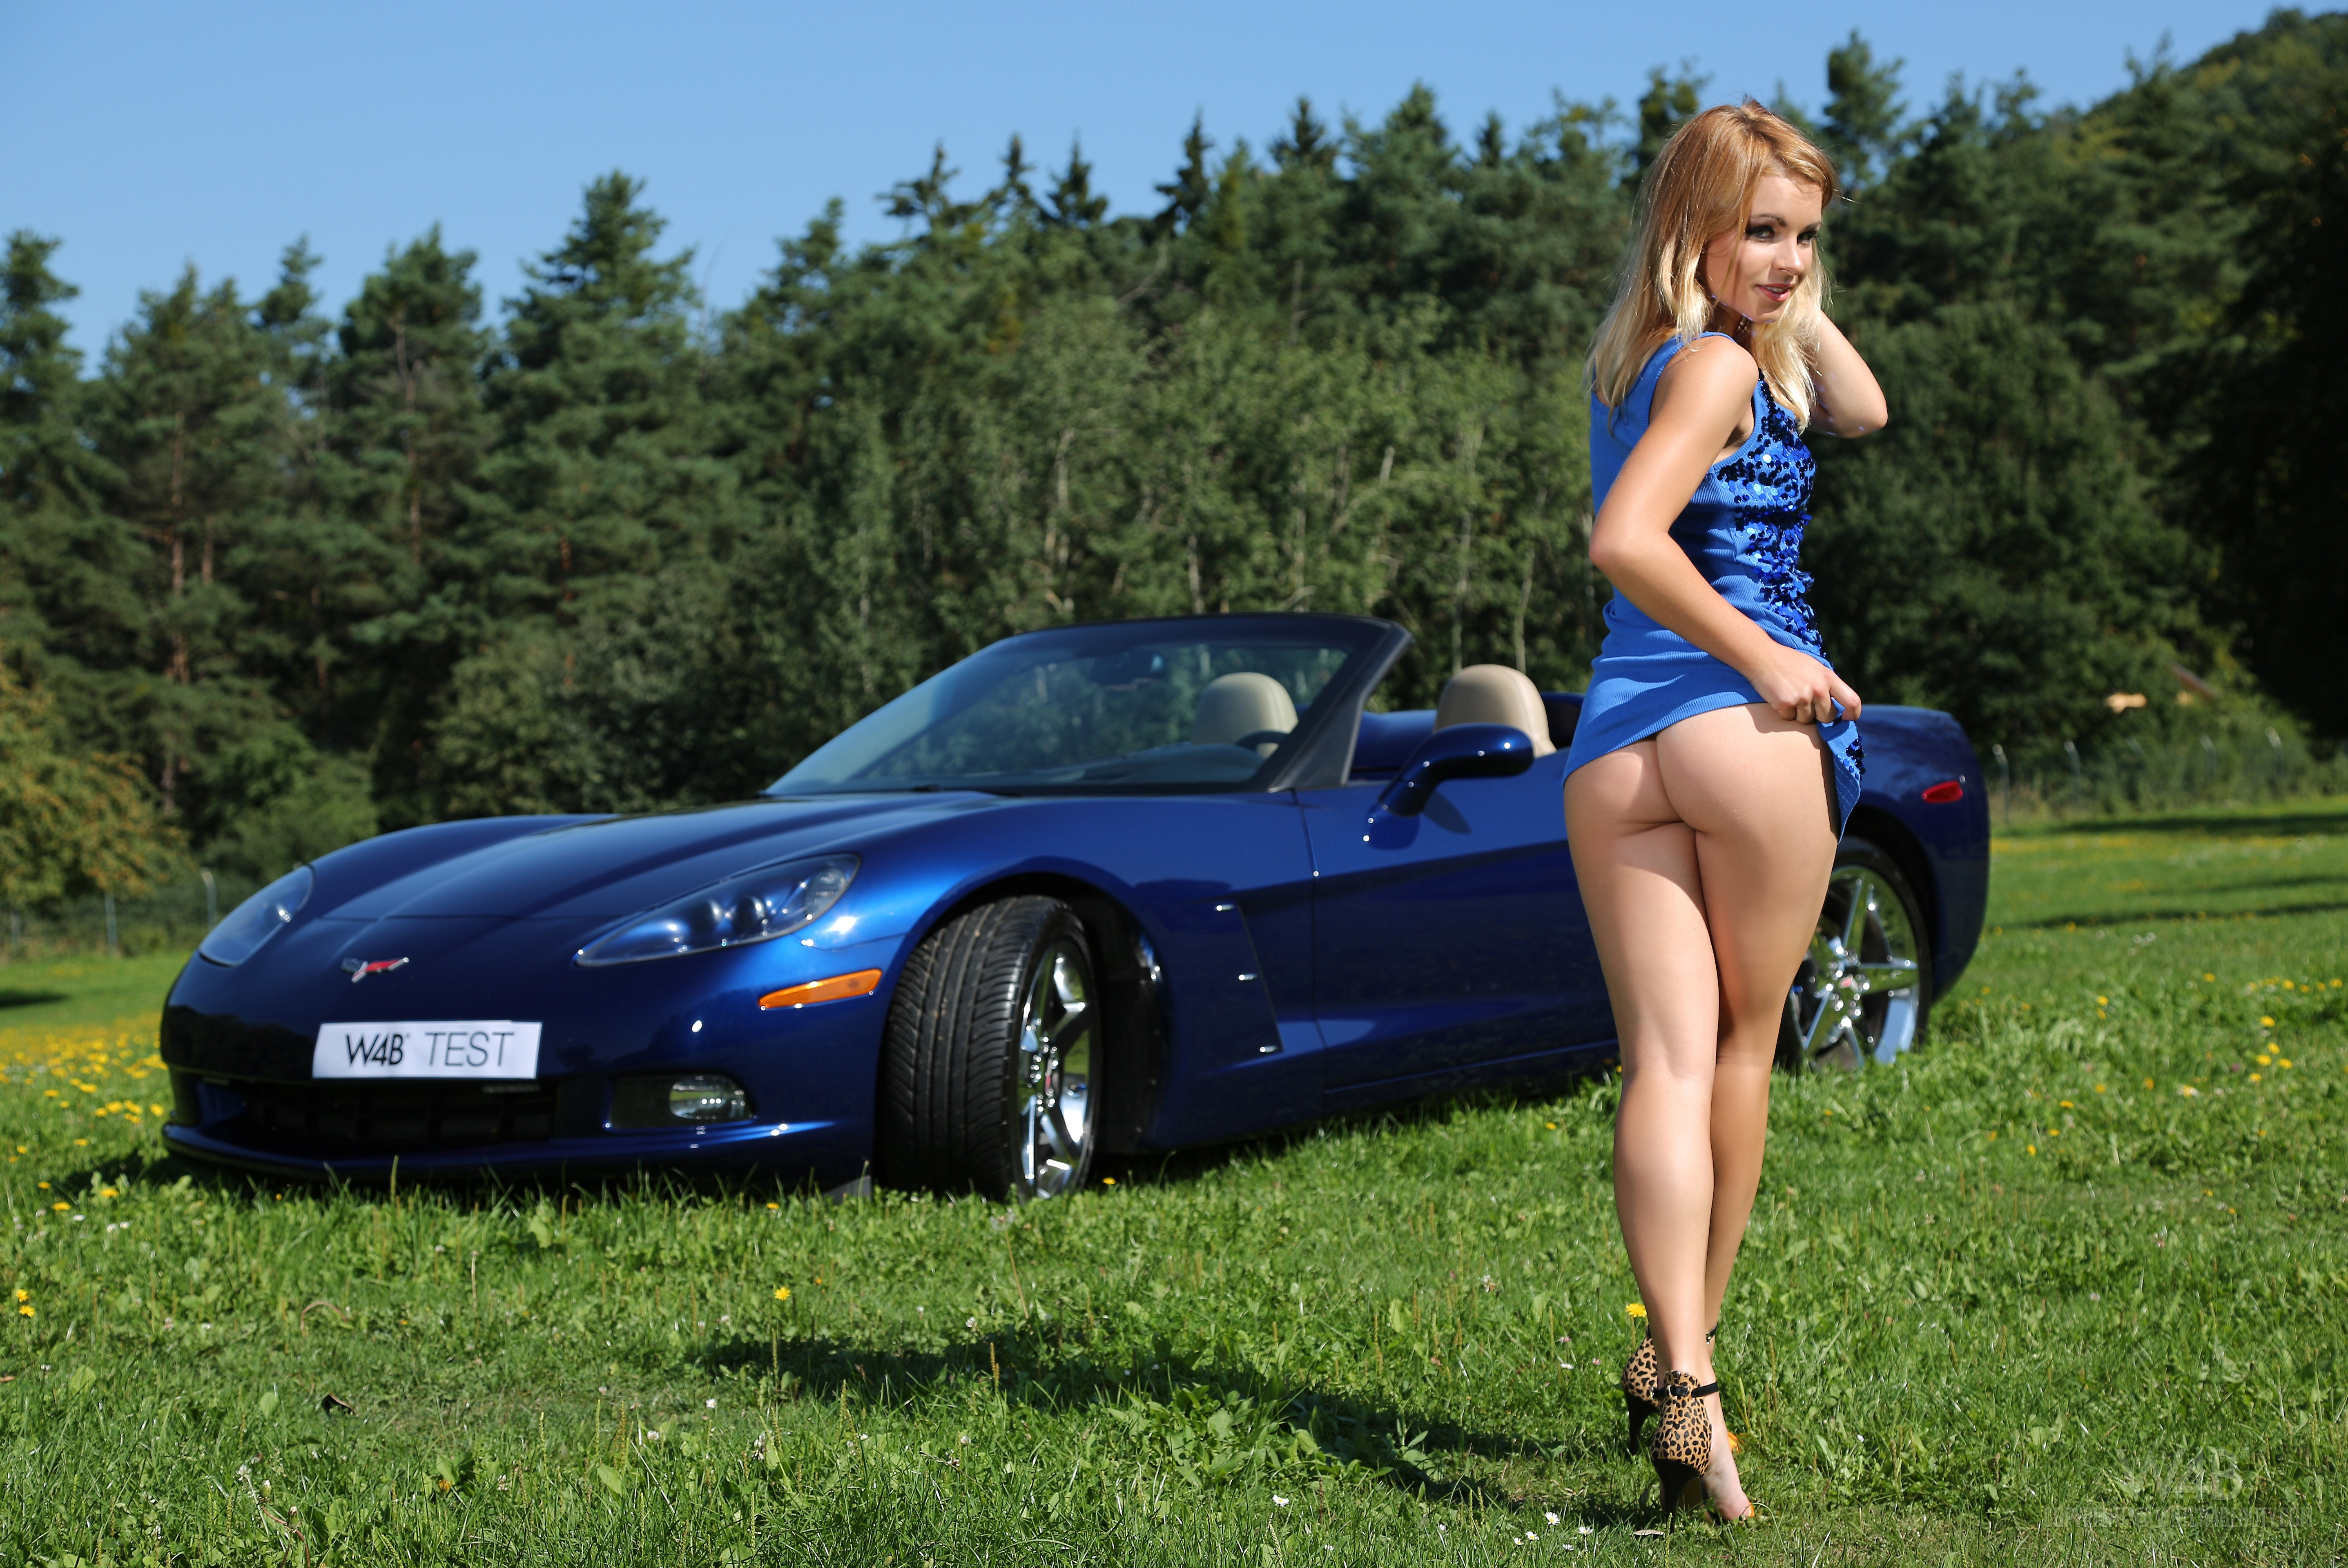 nudes-with-corvettes-images